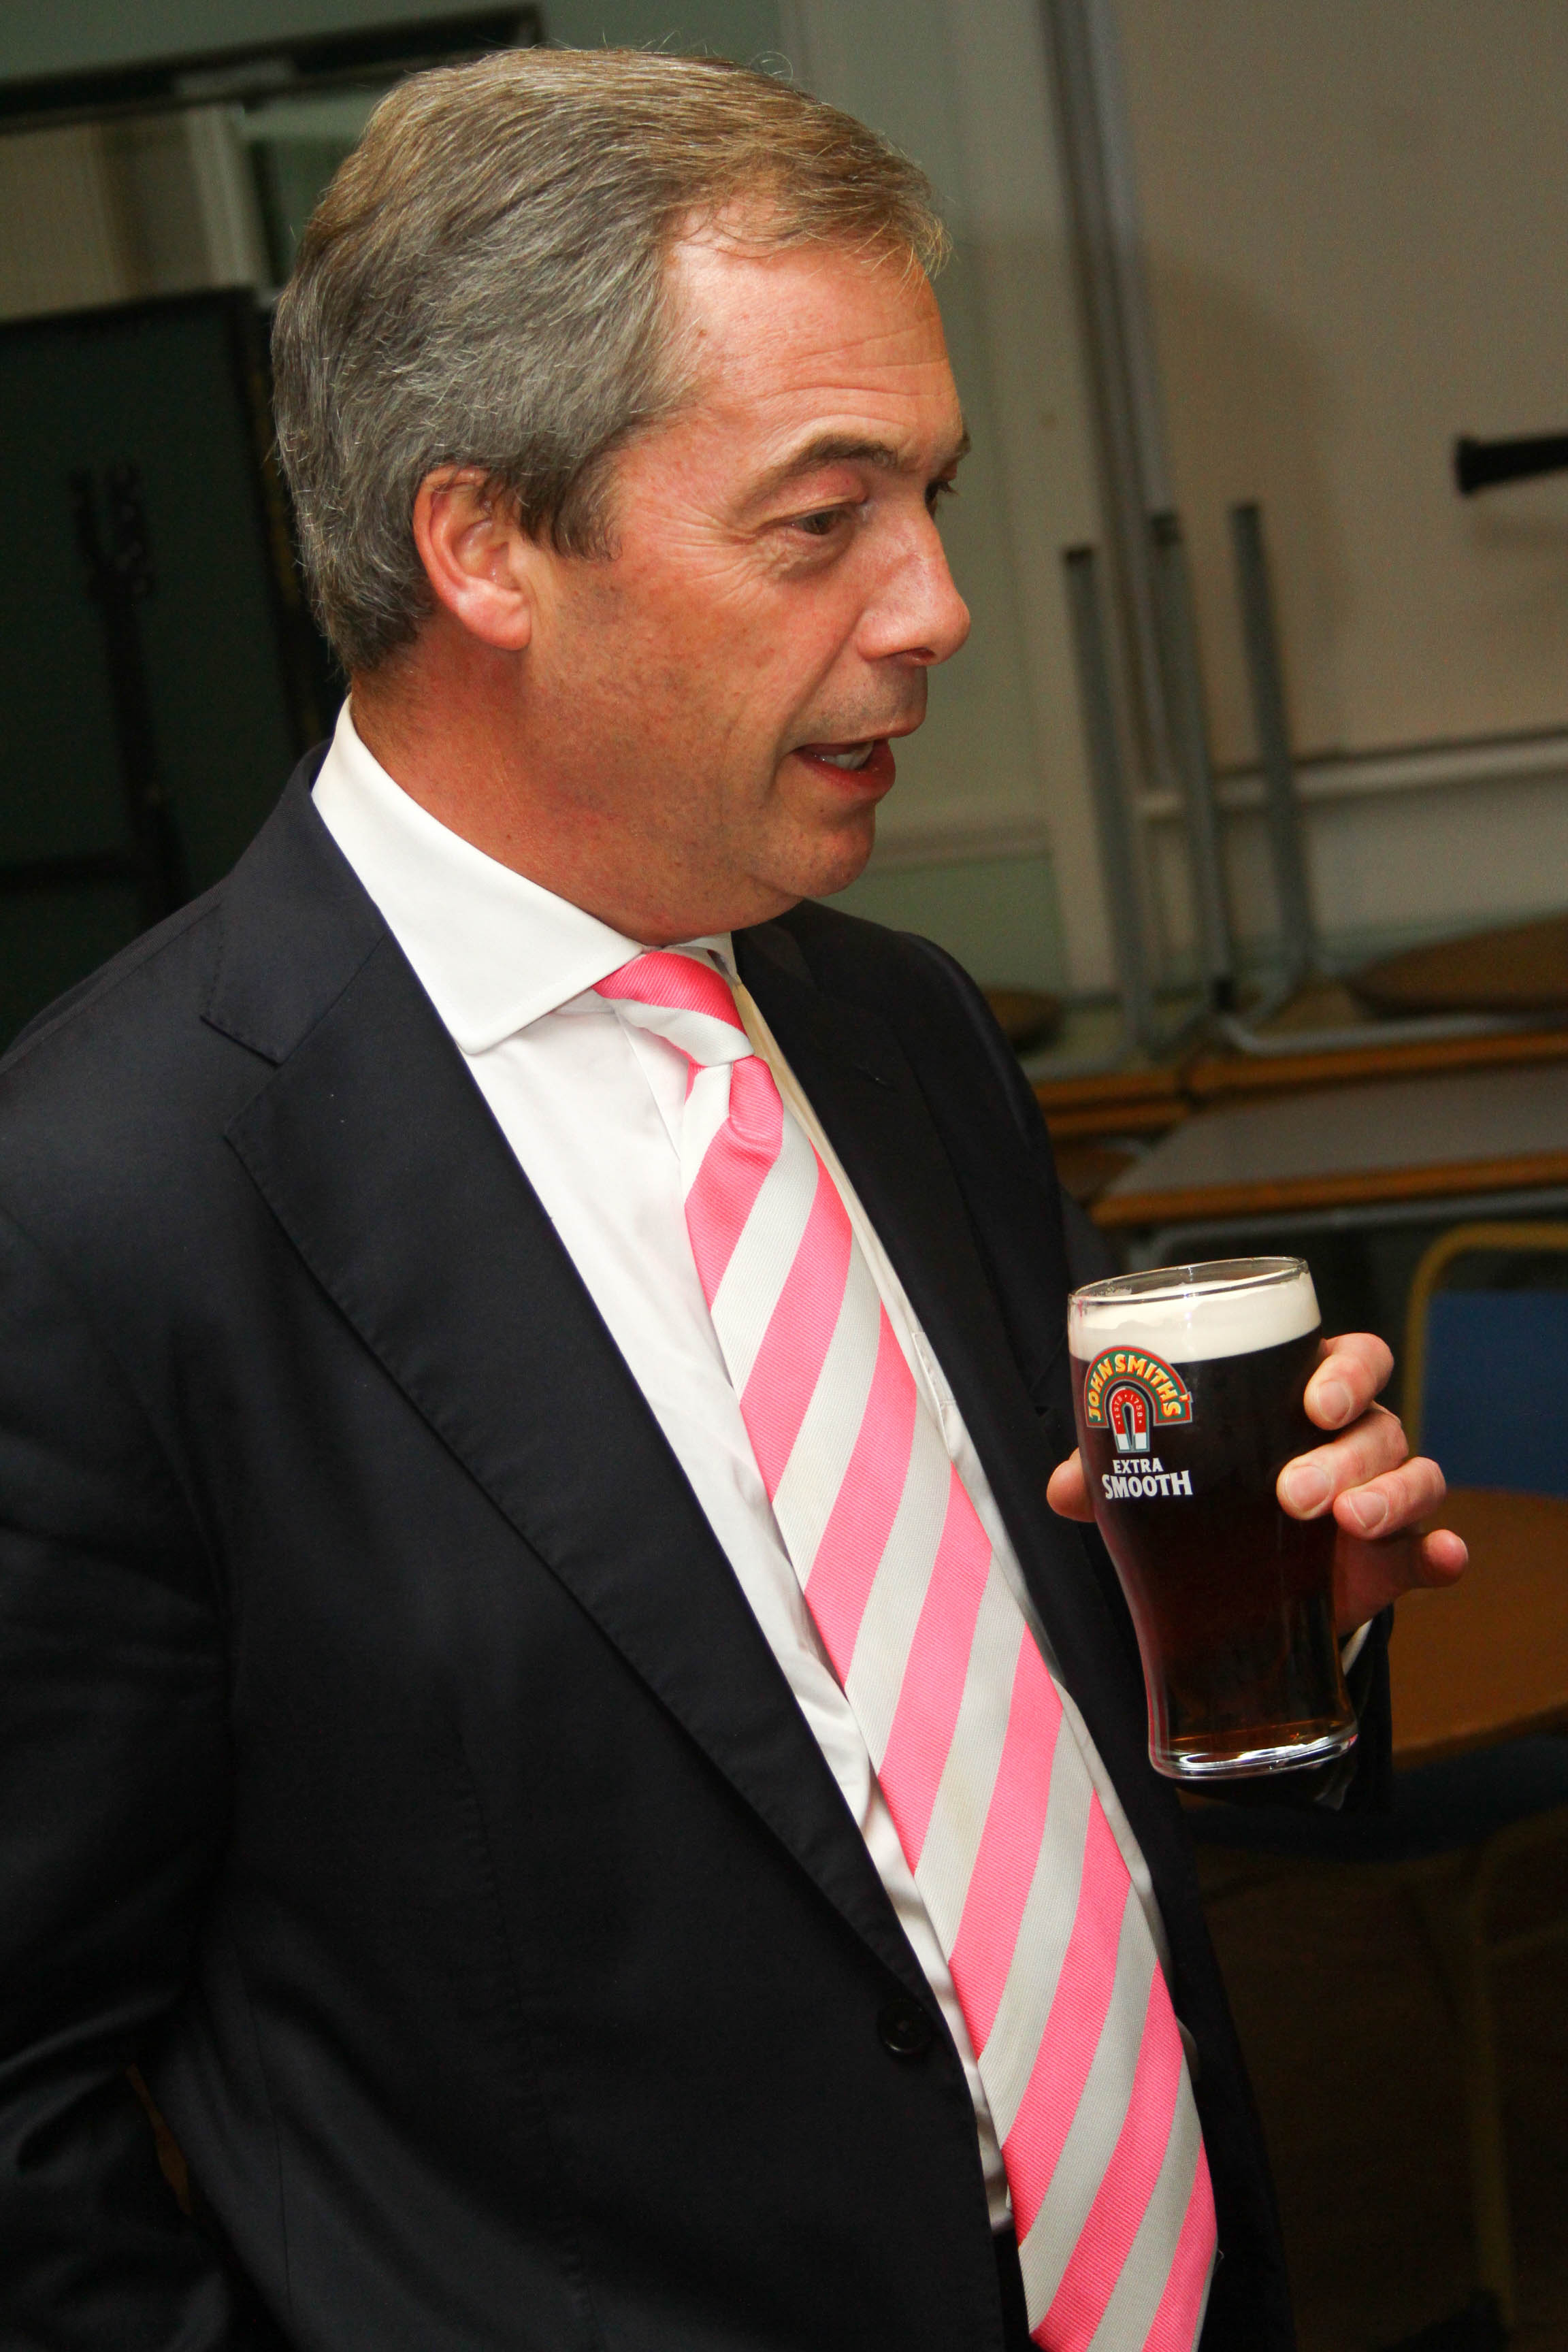 Farage outlines policies and aspirations at Winnington Rec